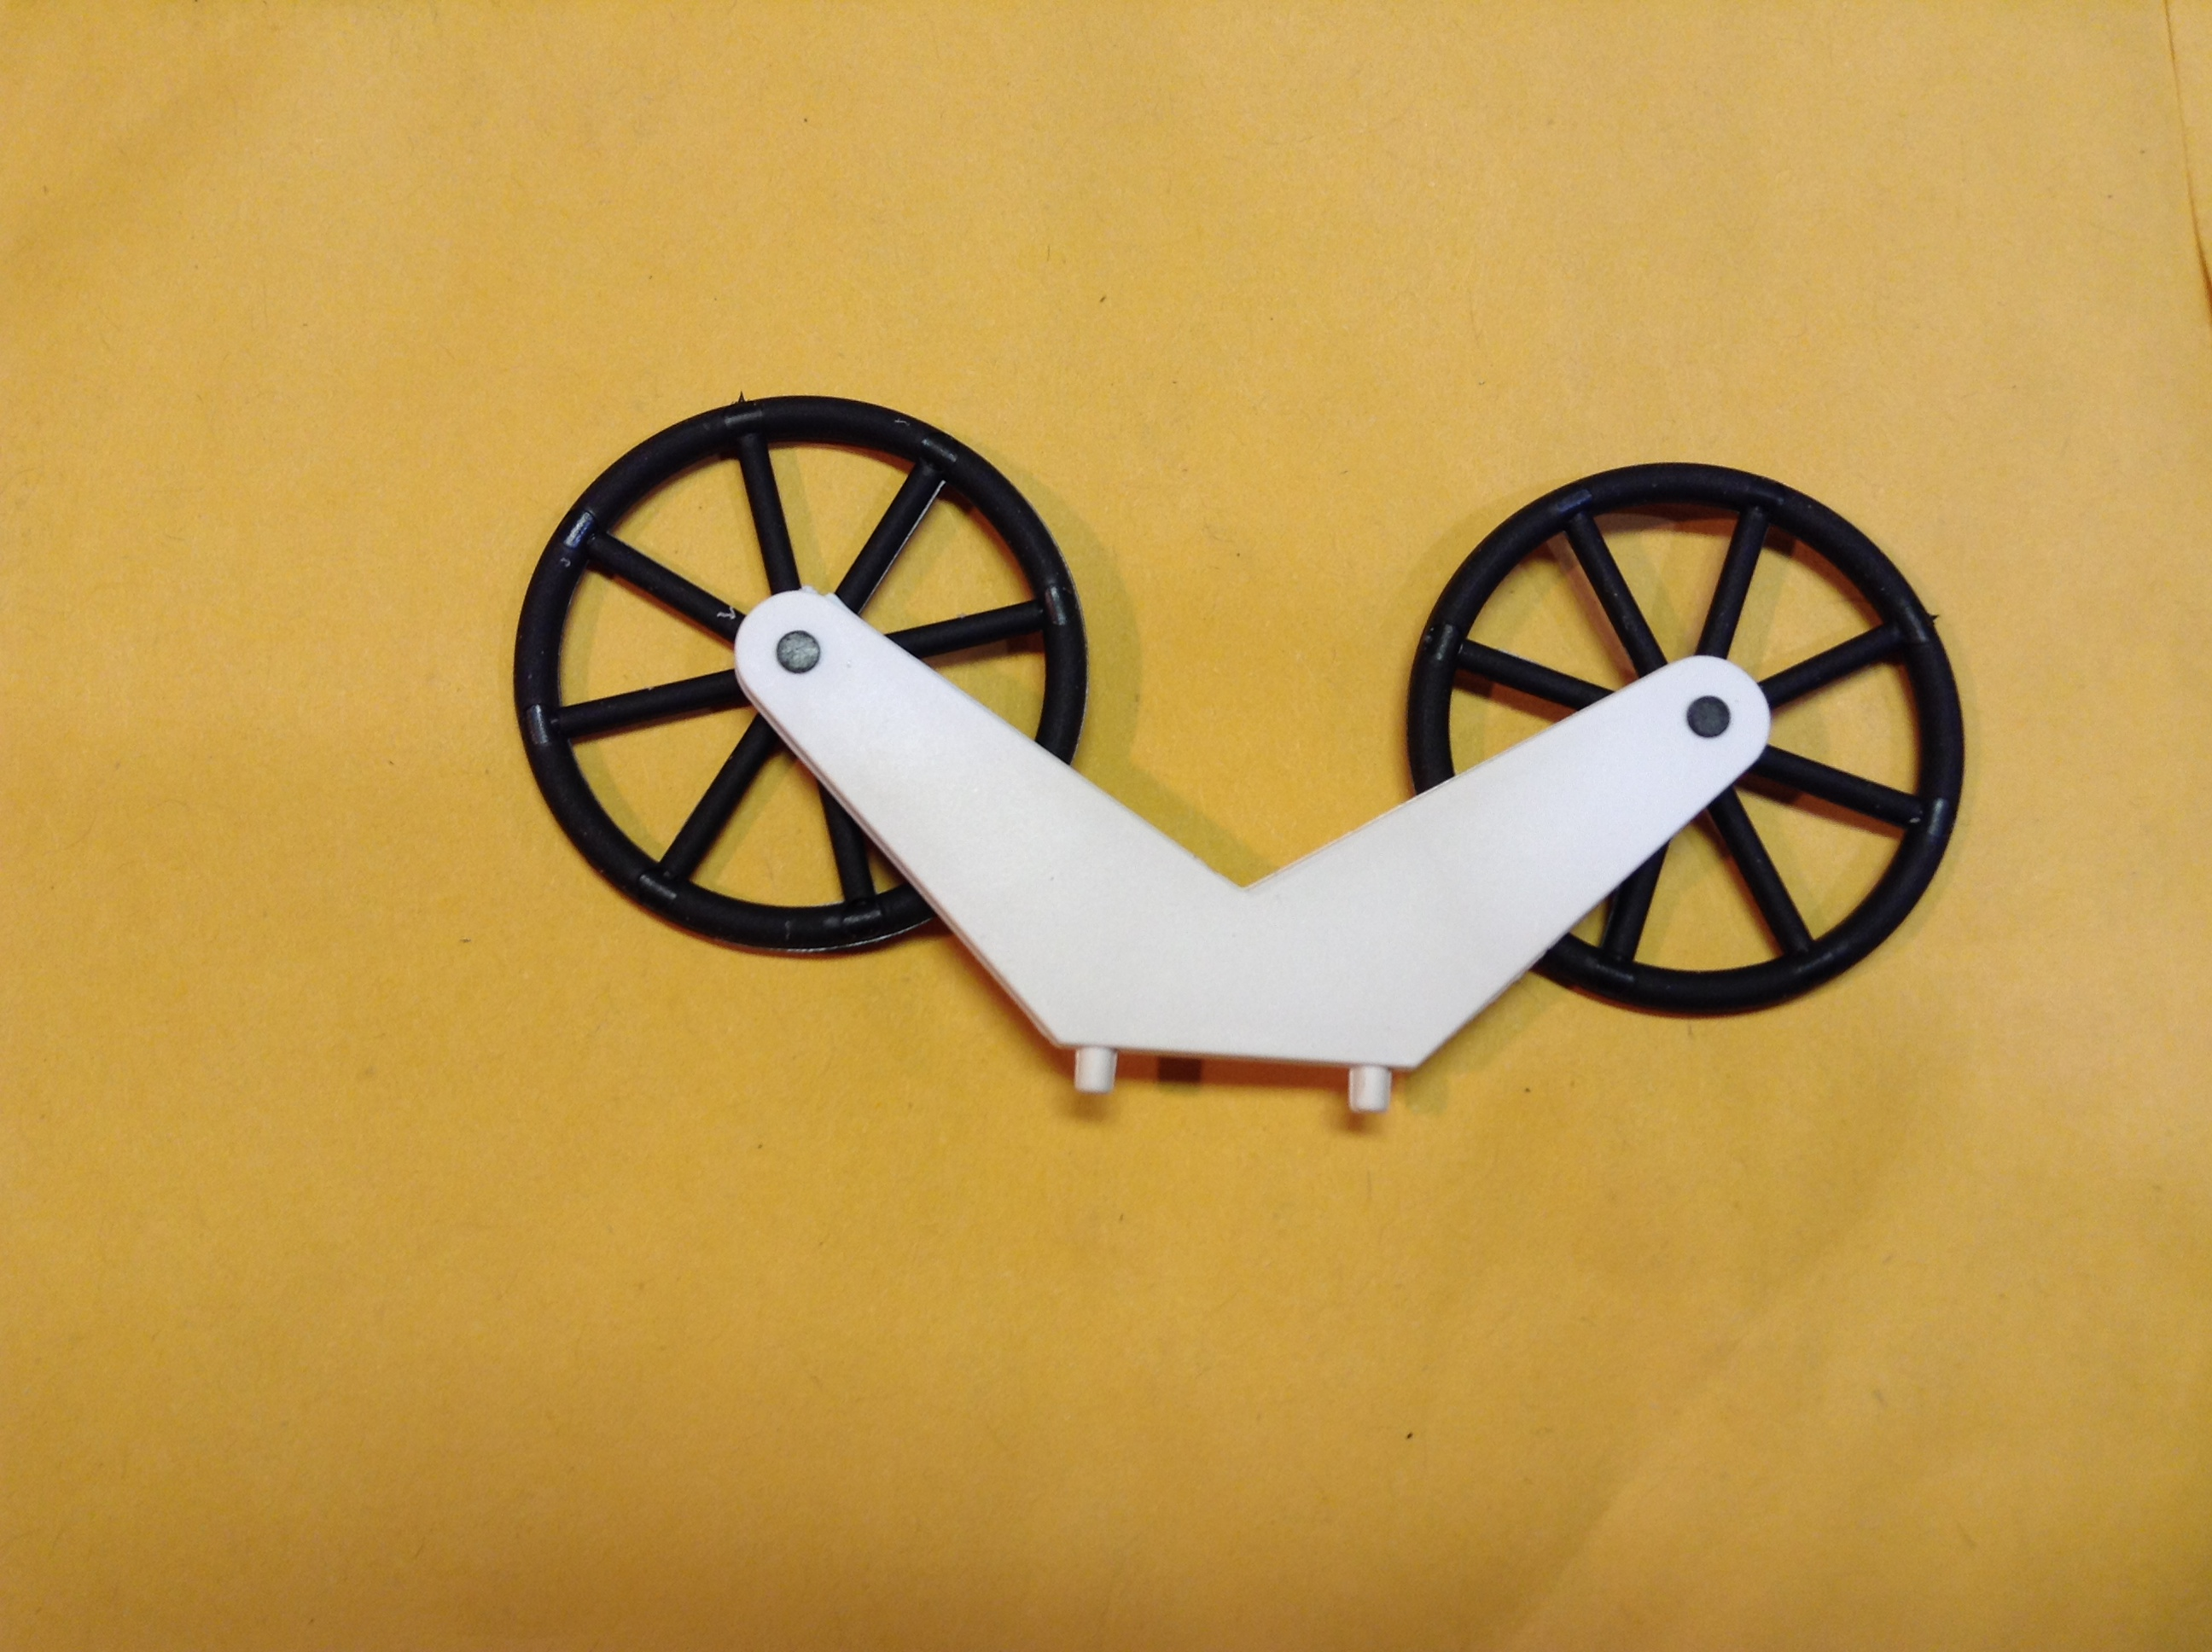 Click image for larger version  Name:vic wheels.JPG Views:51 Size:1.14 MB ID:2001152